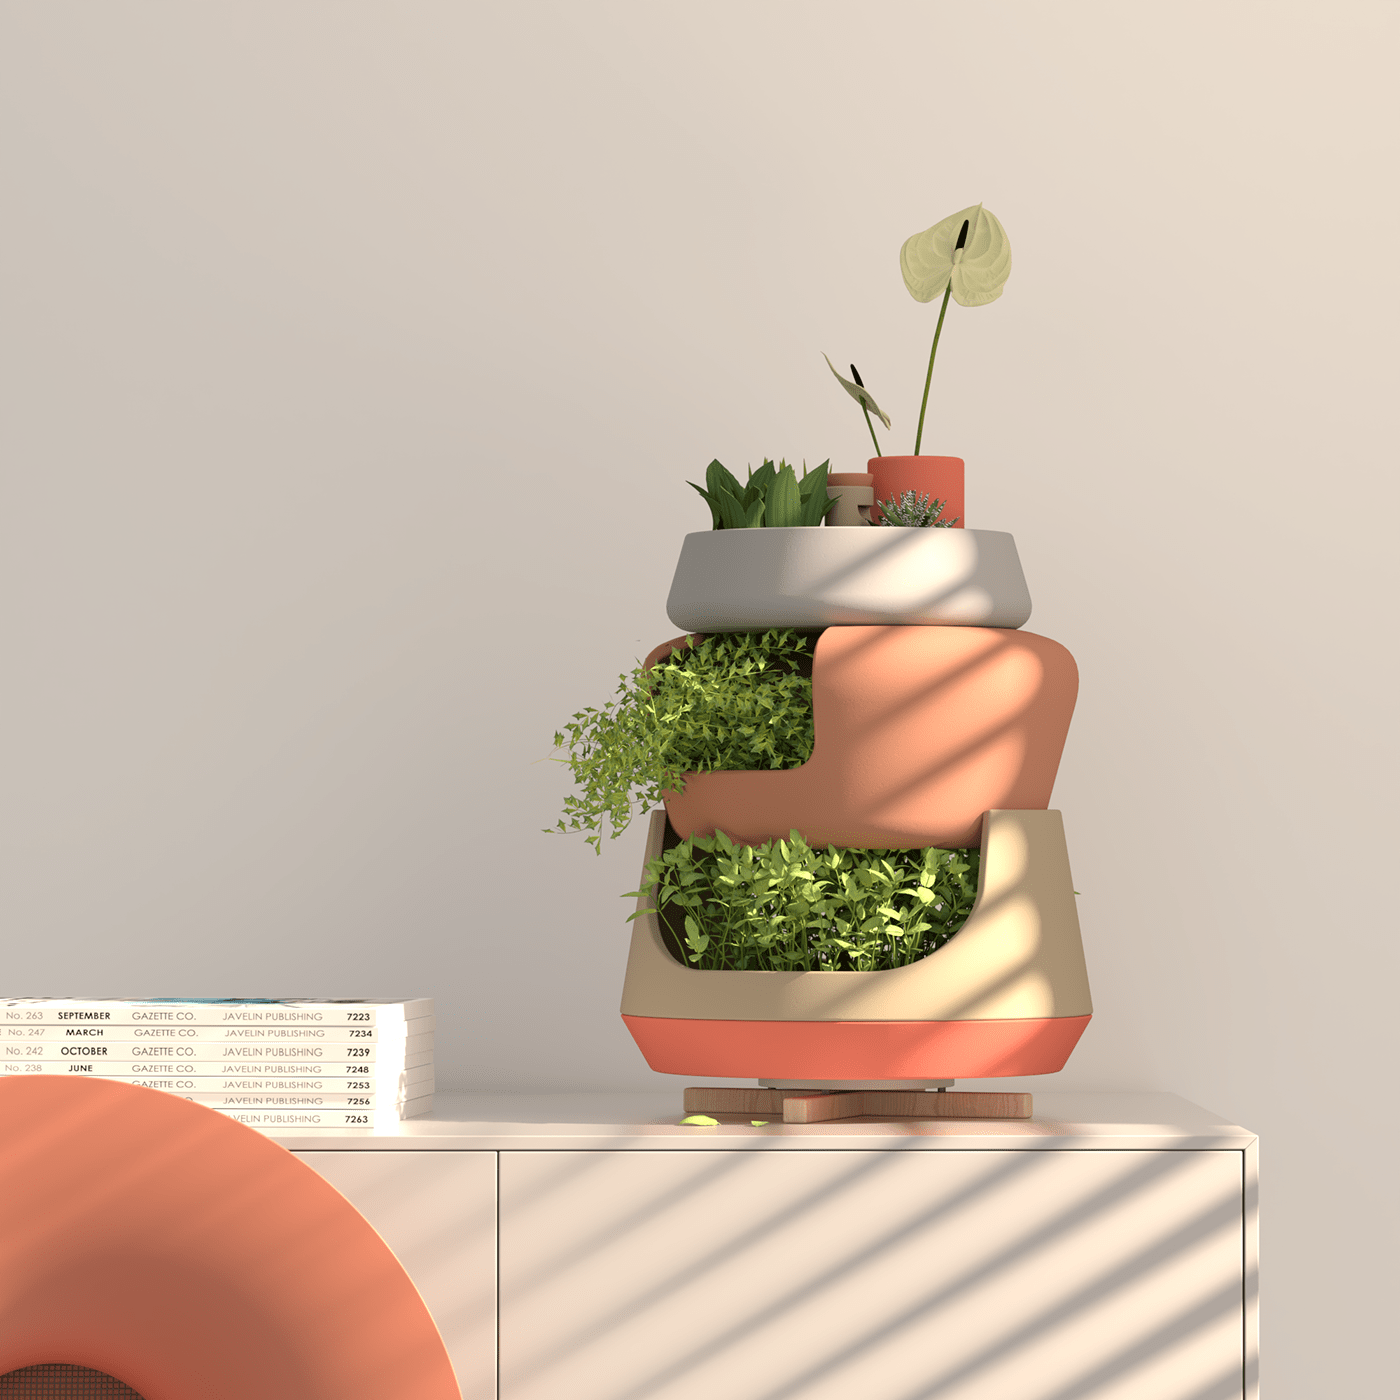 Modular vase system designed as a possible solution for organizing and taking care of plants